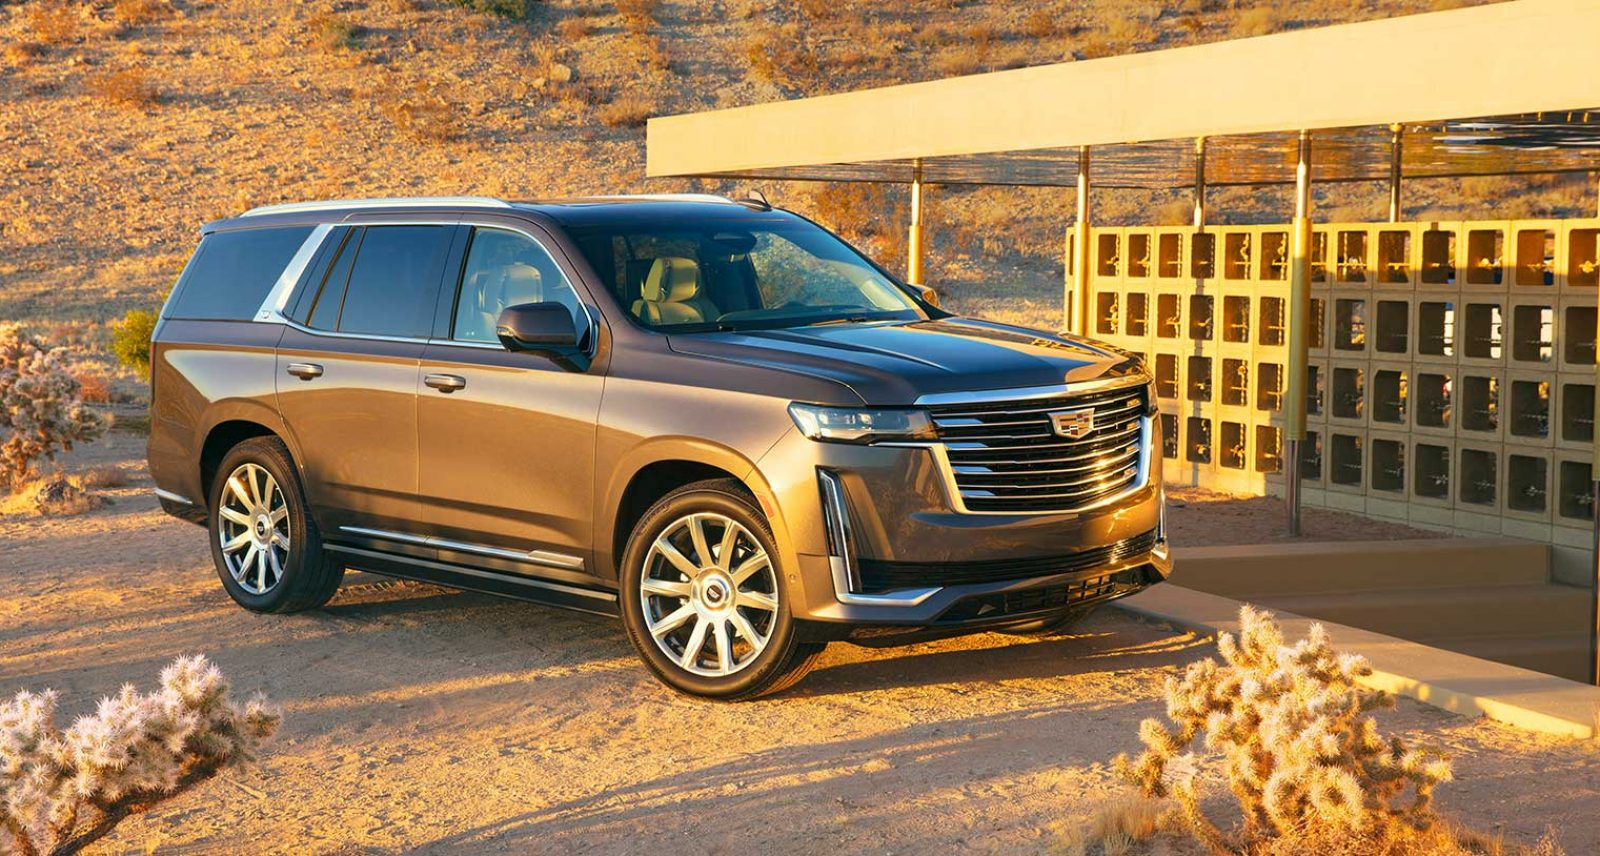 The 2021 Cadillac Escalade is the Most Luxurious Yet